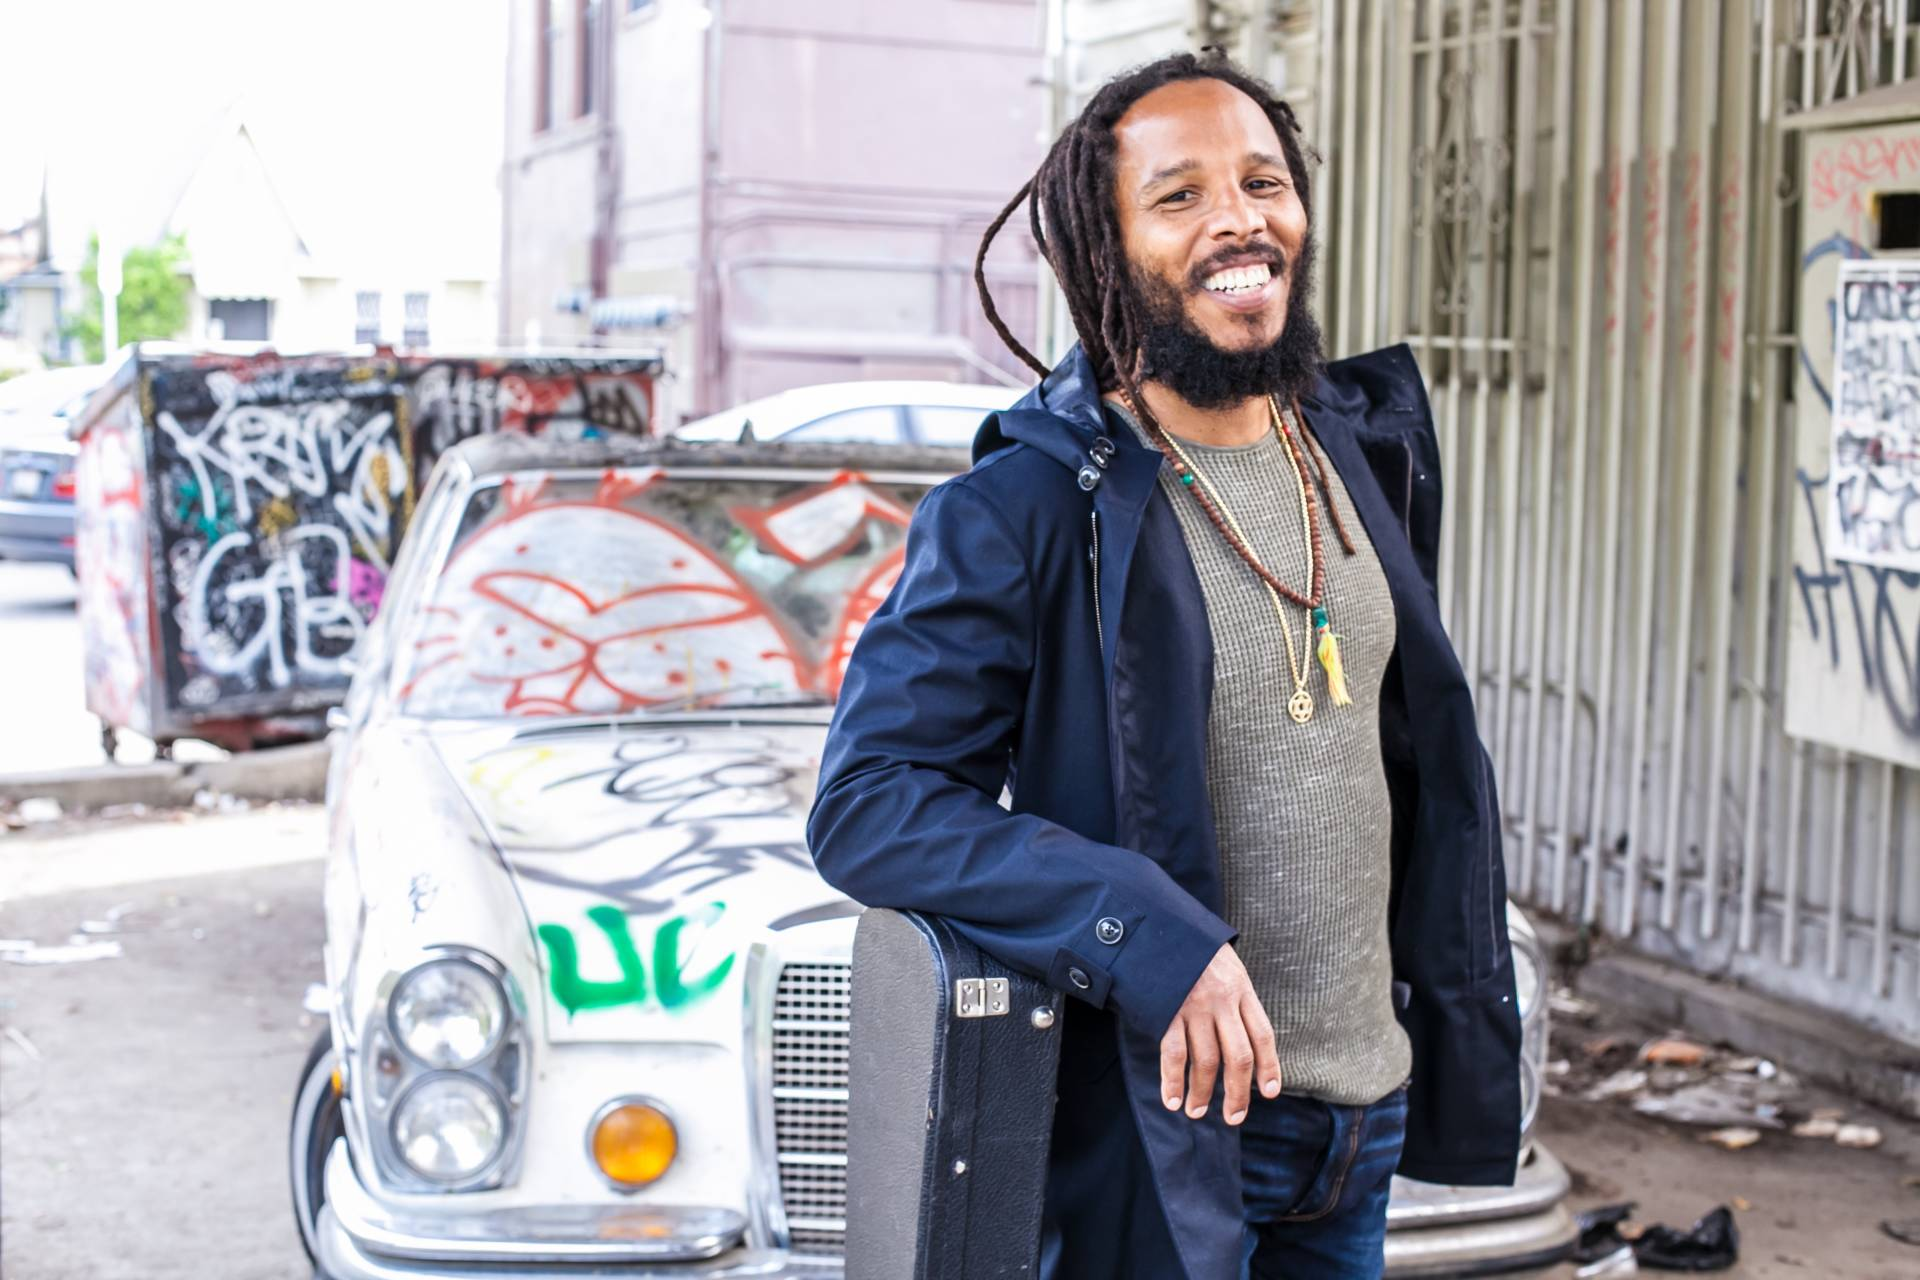 Ziggy Marley performs at Stern Grove Festival on June 24.  Gregory Bojorquez